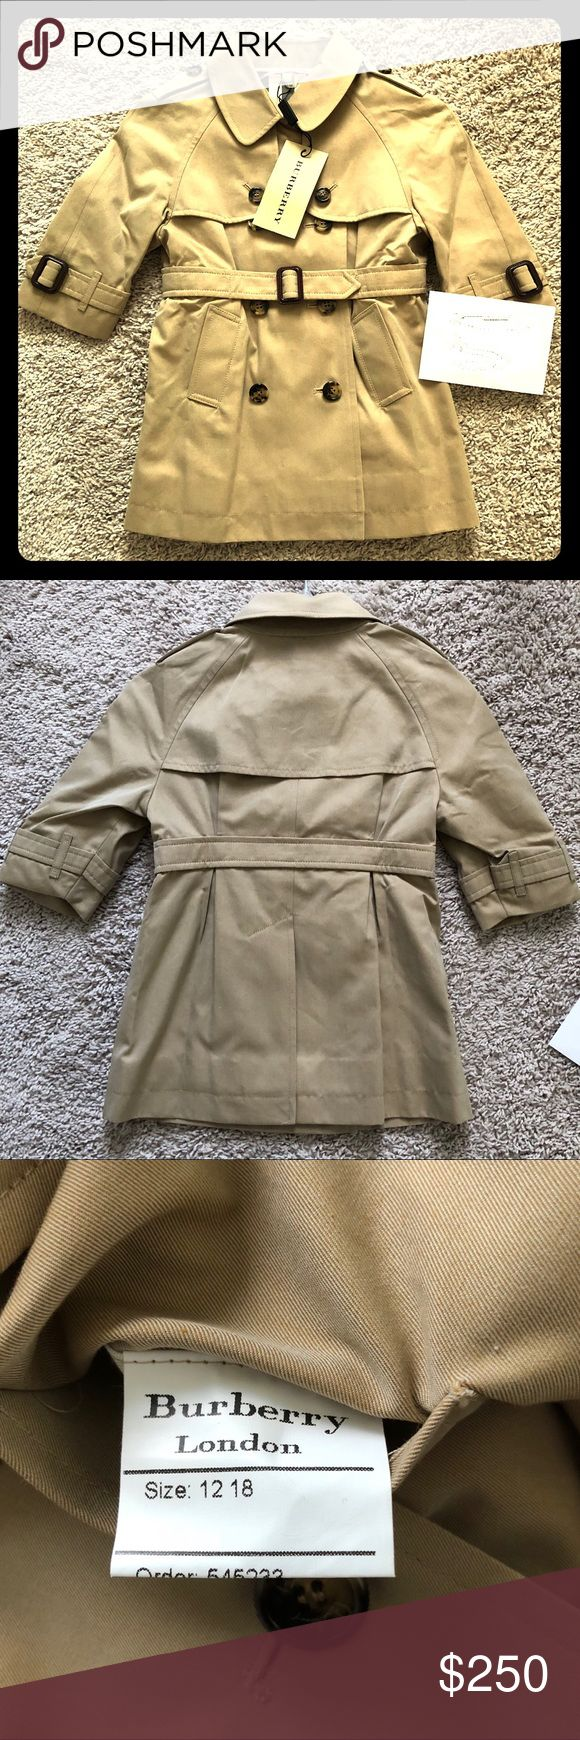 Burberry Baby Trench Coat Burberry London Baby Trench Coat  Size 12-18 Months Brand new with tags Color: Honey Brown leather covered buckles, shades of brown button detail.  Check print lining.  Made in England/UK. Double breasted with belt. Pet free smoke free home.   Unisex Perfect for a baby boy or baby girl #burberrybaby Burberry Jackets & Coats #babygirlcoats